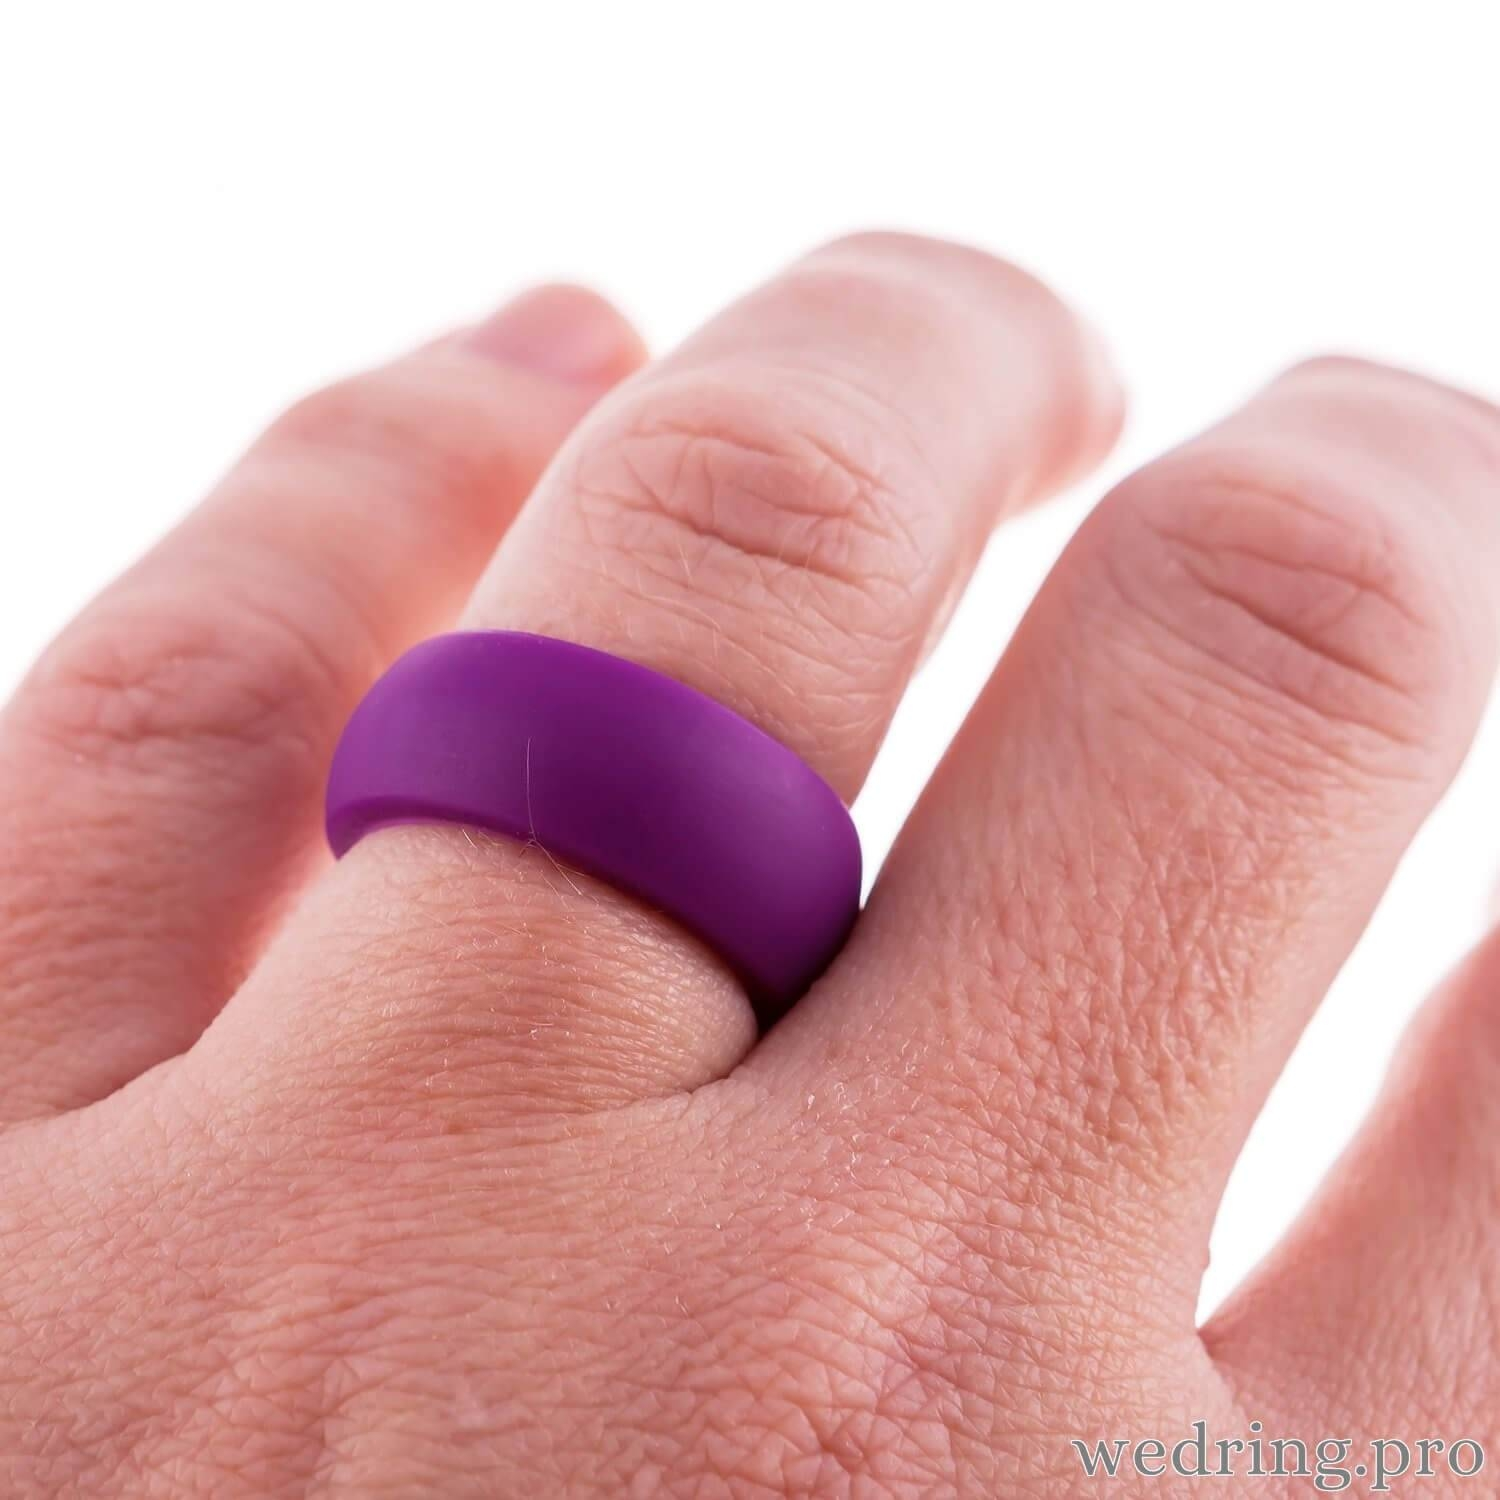 Plastic Wedding Rings As Party Favors For Plastic Wedding Bands (View 10 of 15)